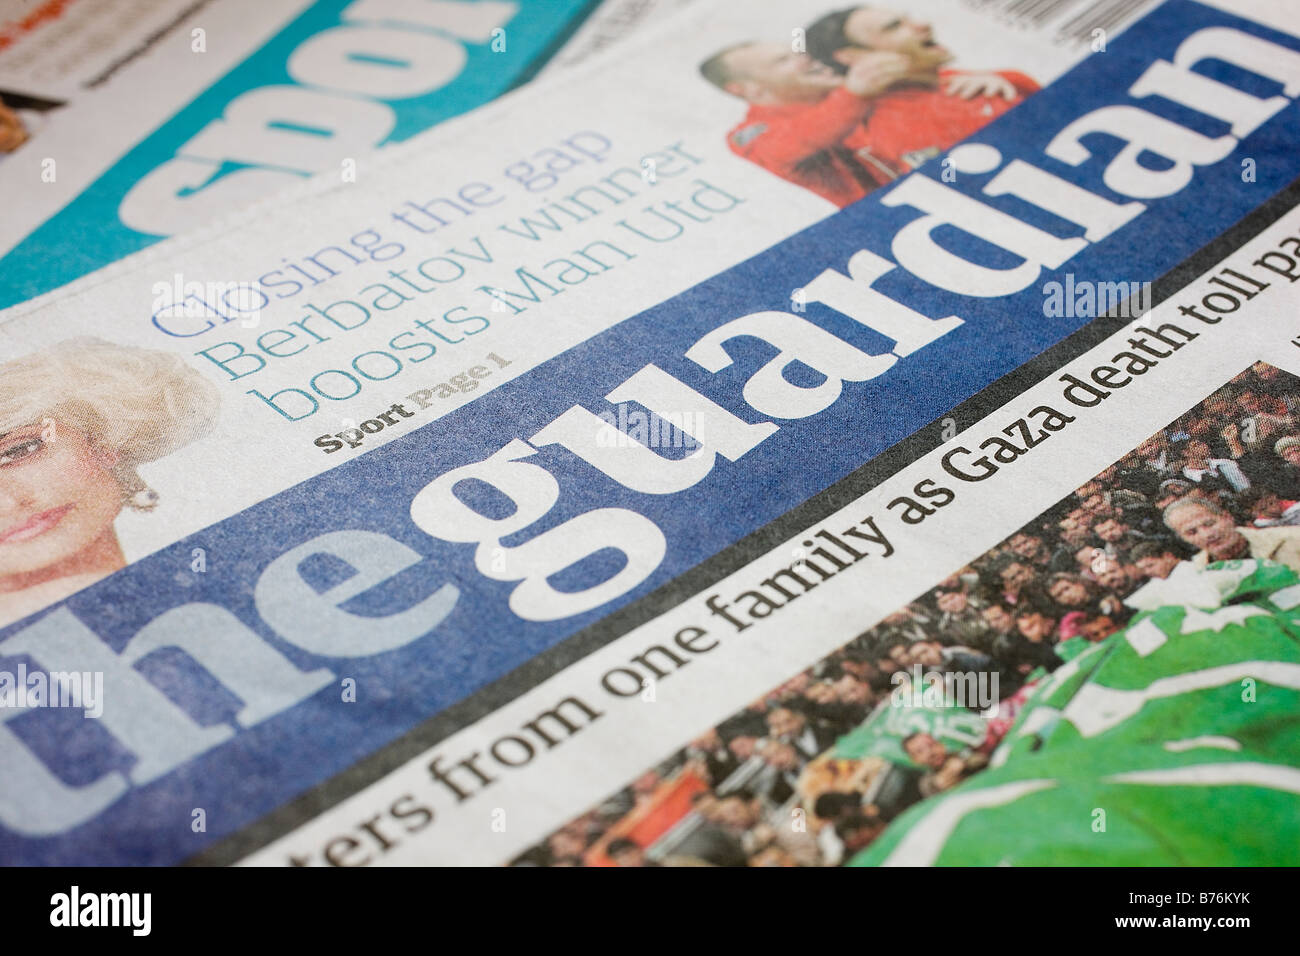 Detail of the front page of the British national newspaper The Guardian - Stock Image